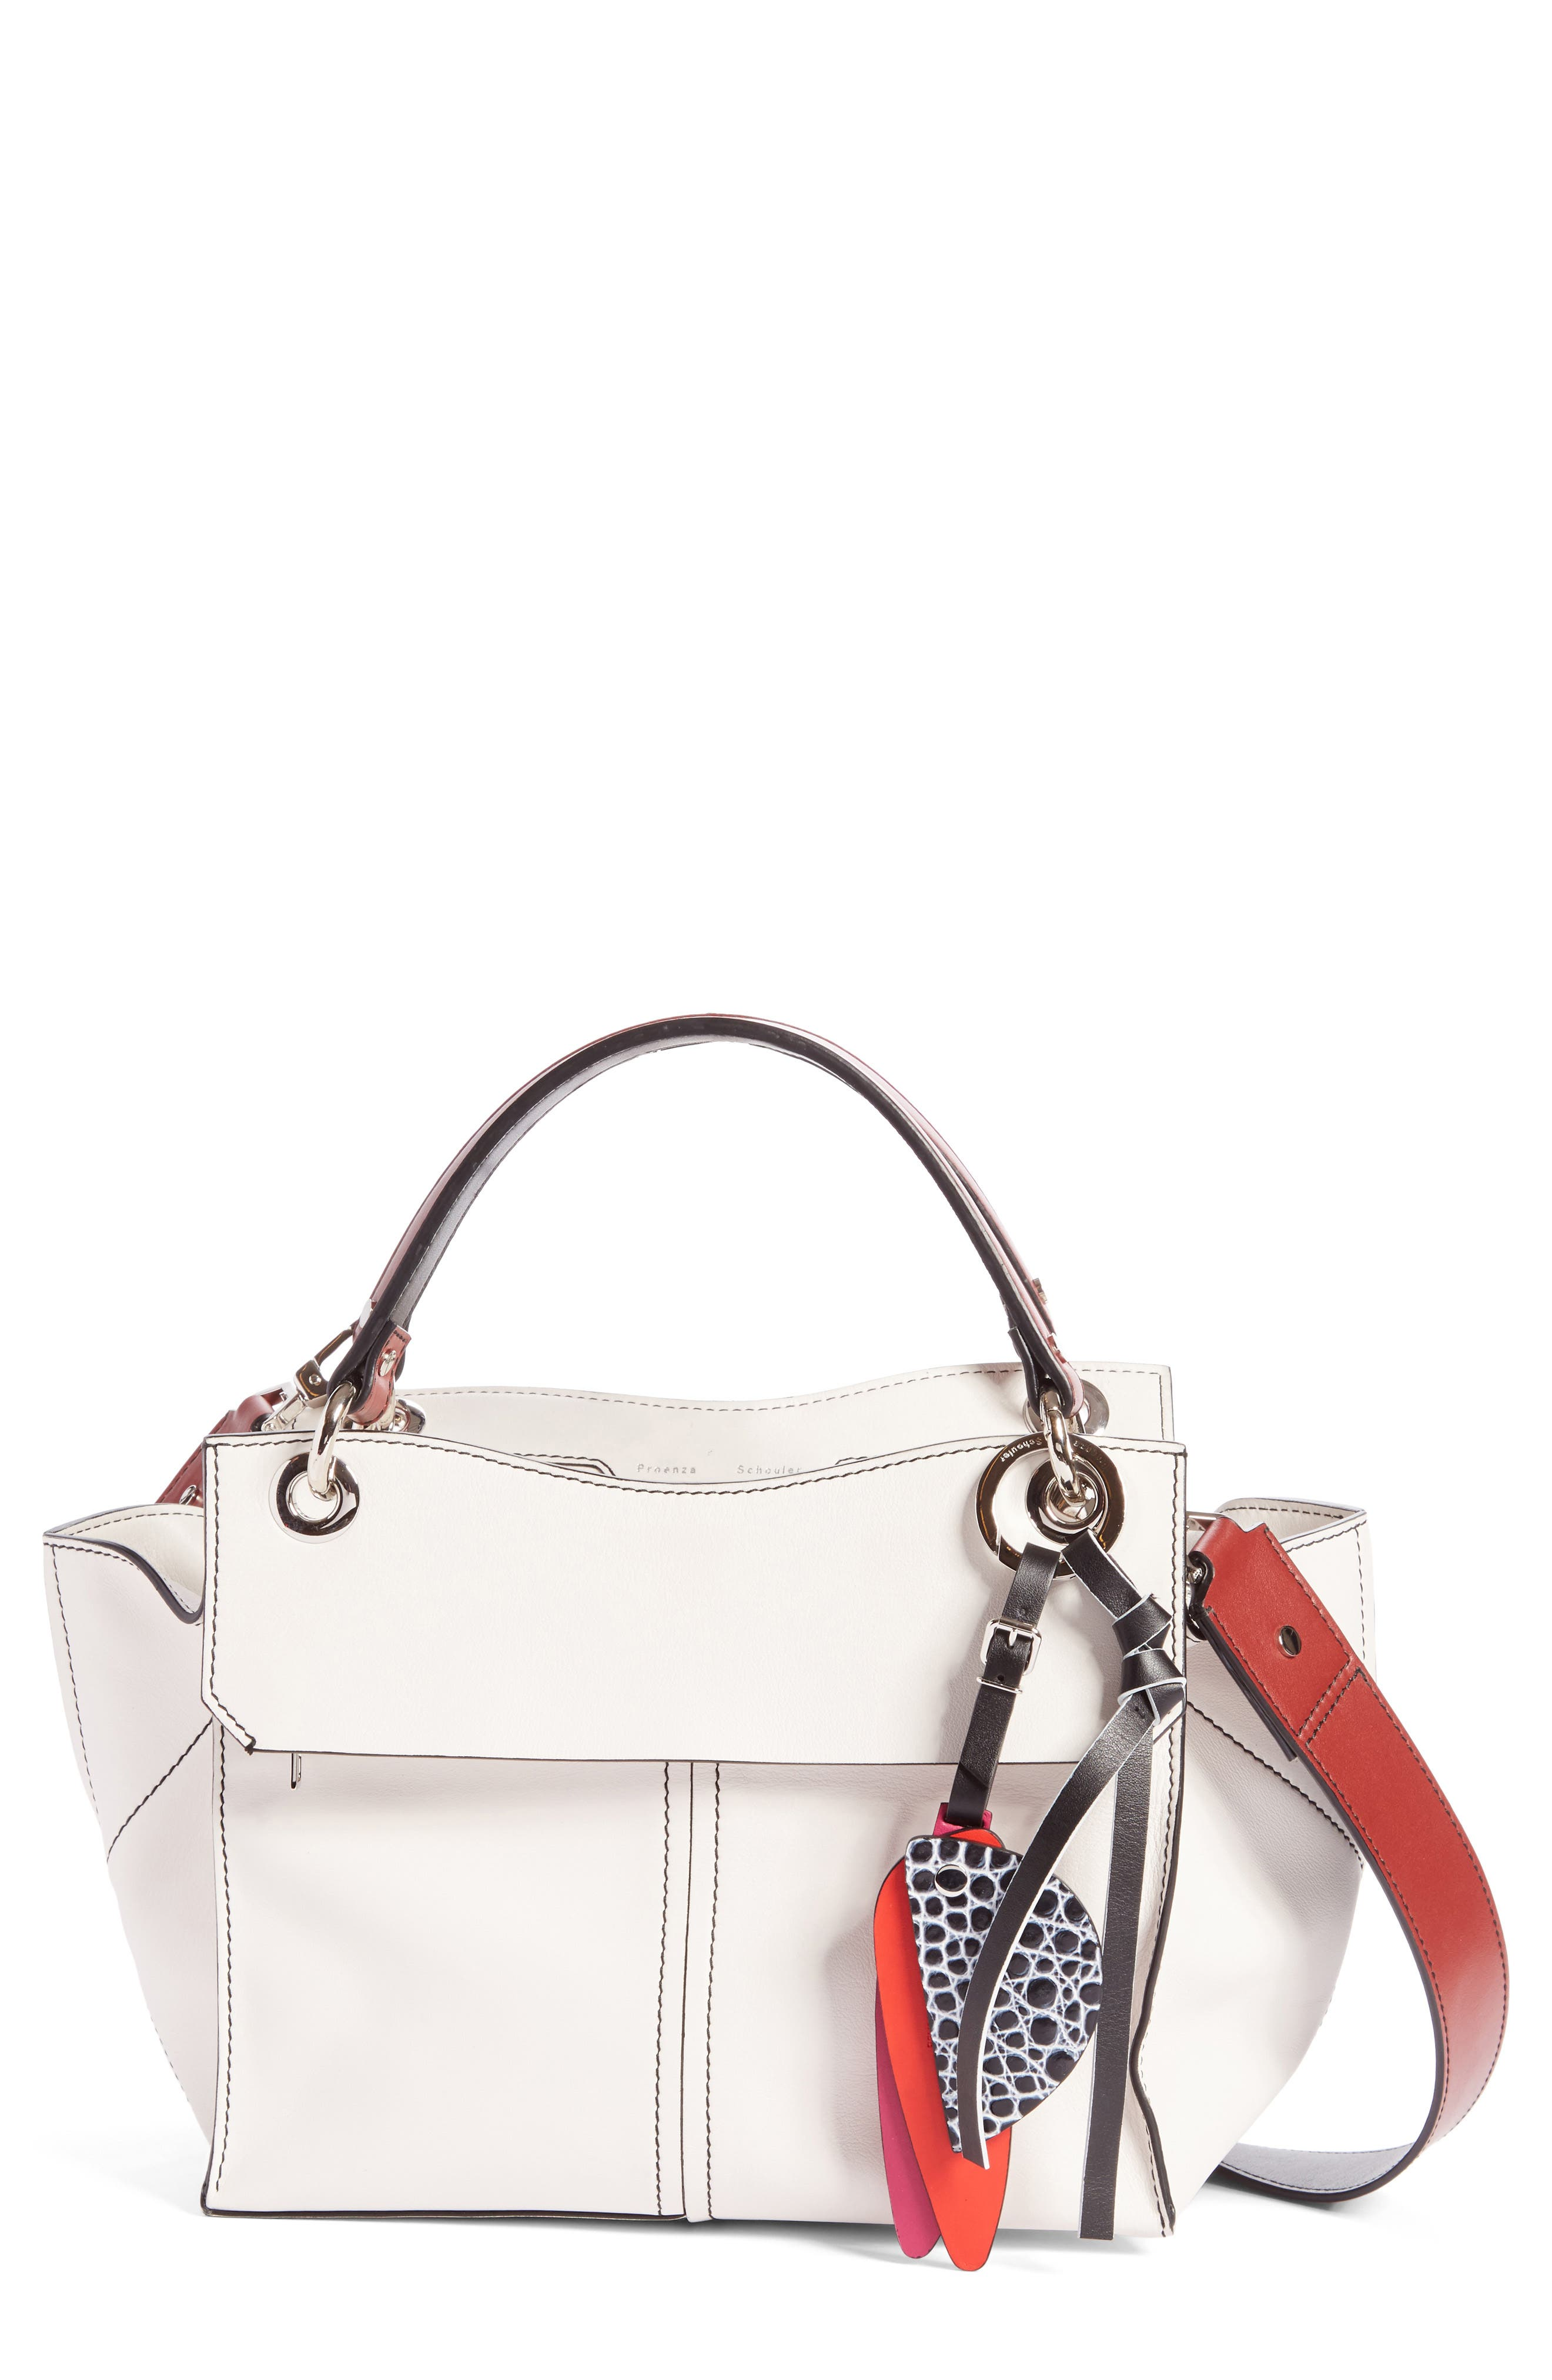 Alternate Image 1 Selected - Proenza Schouler Curl Leather Shoulder Bag